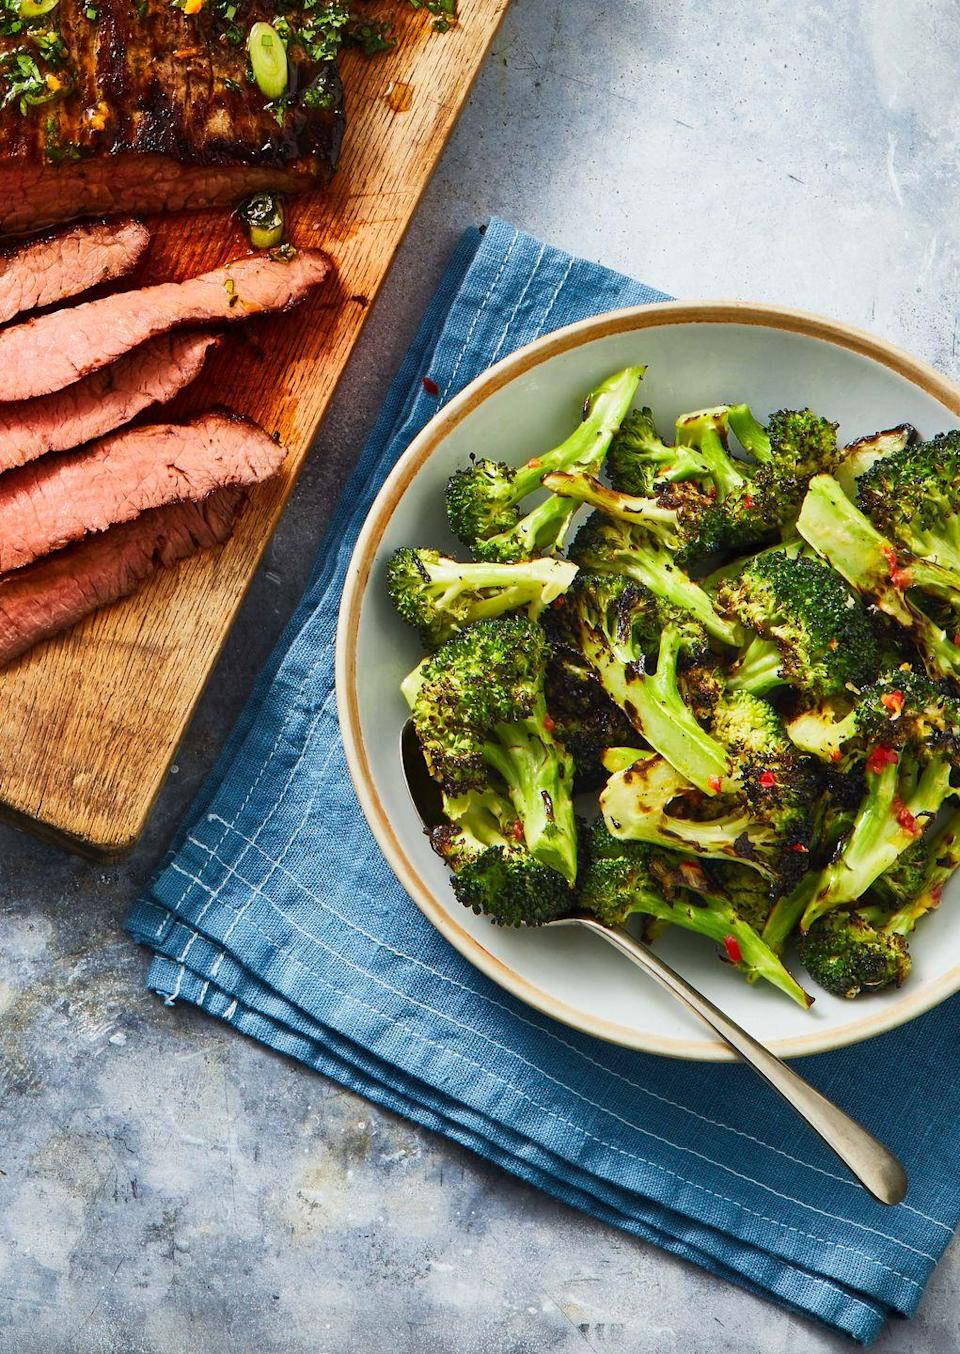 """<p>Skip the grilling step and make broccoli in the air fryer, then toss with a spicy lemon-butter sauce.</p><p><em><a href=""""https://www.goodhousekeeping.com/food-recipes/a36232570/grilled-broccoli-recipe/"""" rel=""""nofollow noopener"""" target=""""_blank"""" data-ylk=""""slk:Get the recipe for Air Fryer Broccoli »"""" class=""""link rapid-noclick-resp"""">Get the recipe for Air Fryer Broccoli »</a></em></p>"""